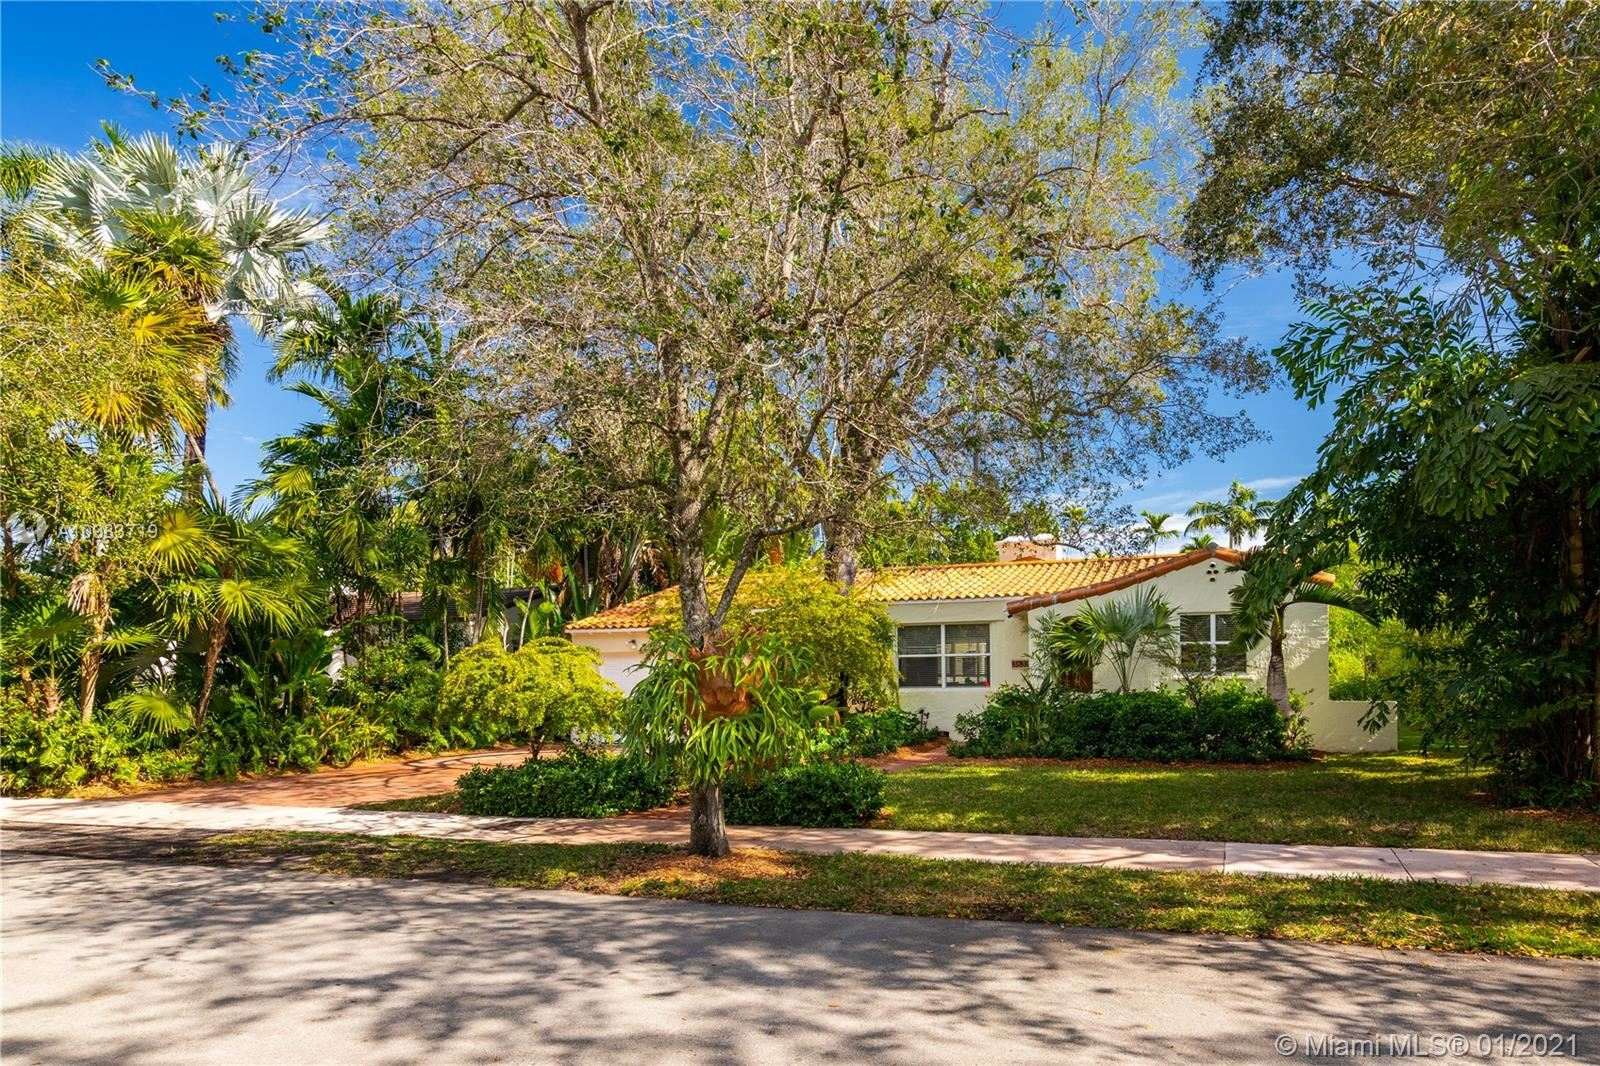 3633 Harlano St, Coral Gables, FL 33134 - #: A10983719